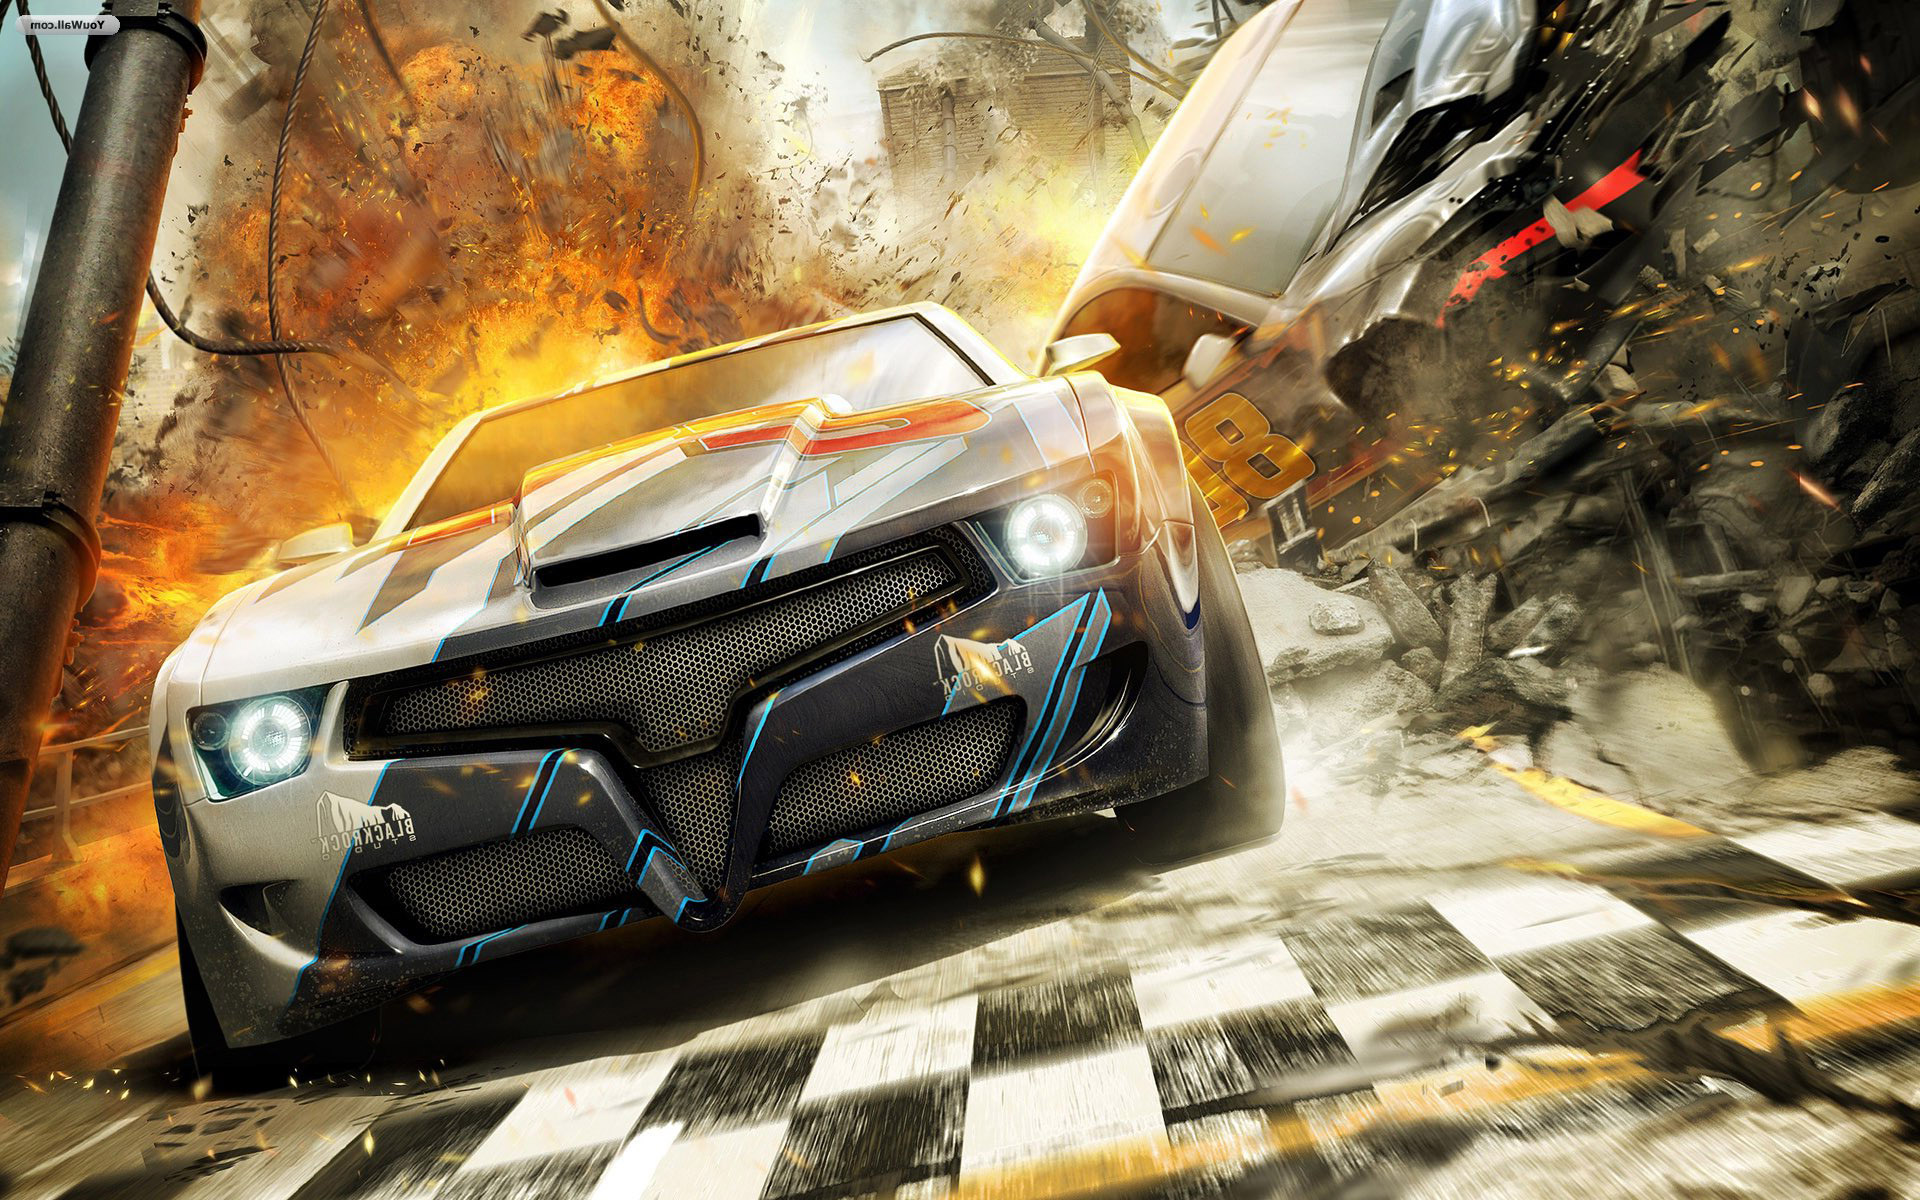 3d Wallpapers Hd 3d Cars Wallpapers Hd: Cool Gaming Wallpapers